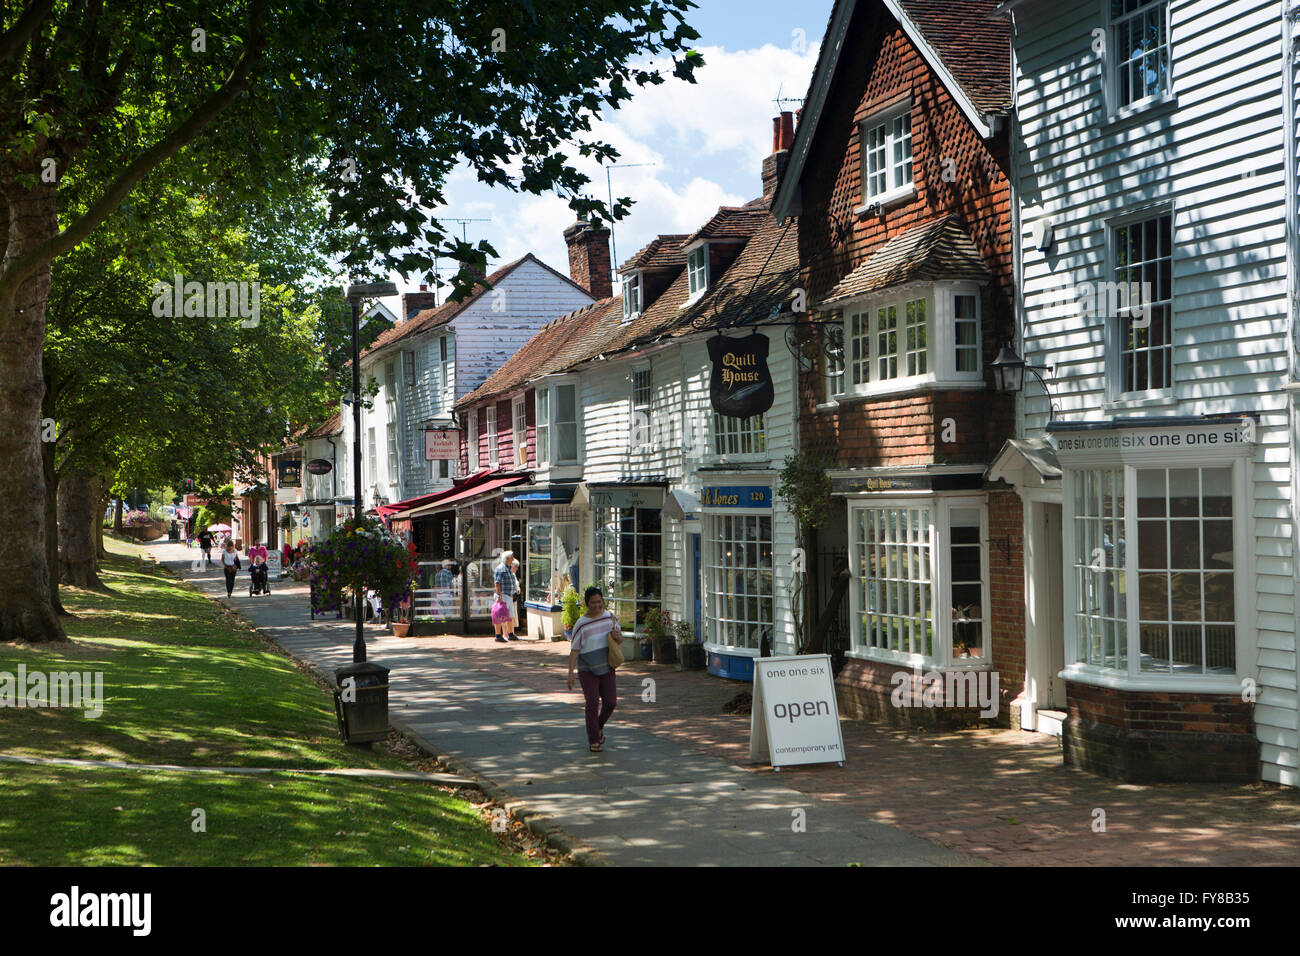 UK, Kent, Tenterden, High Street, picturesque tile hung and weatherboarded shops near West Cross - Stock Image